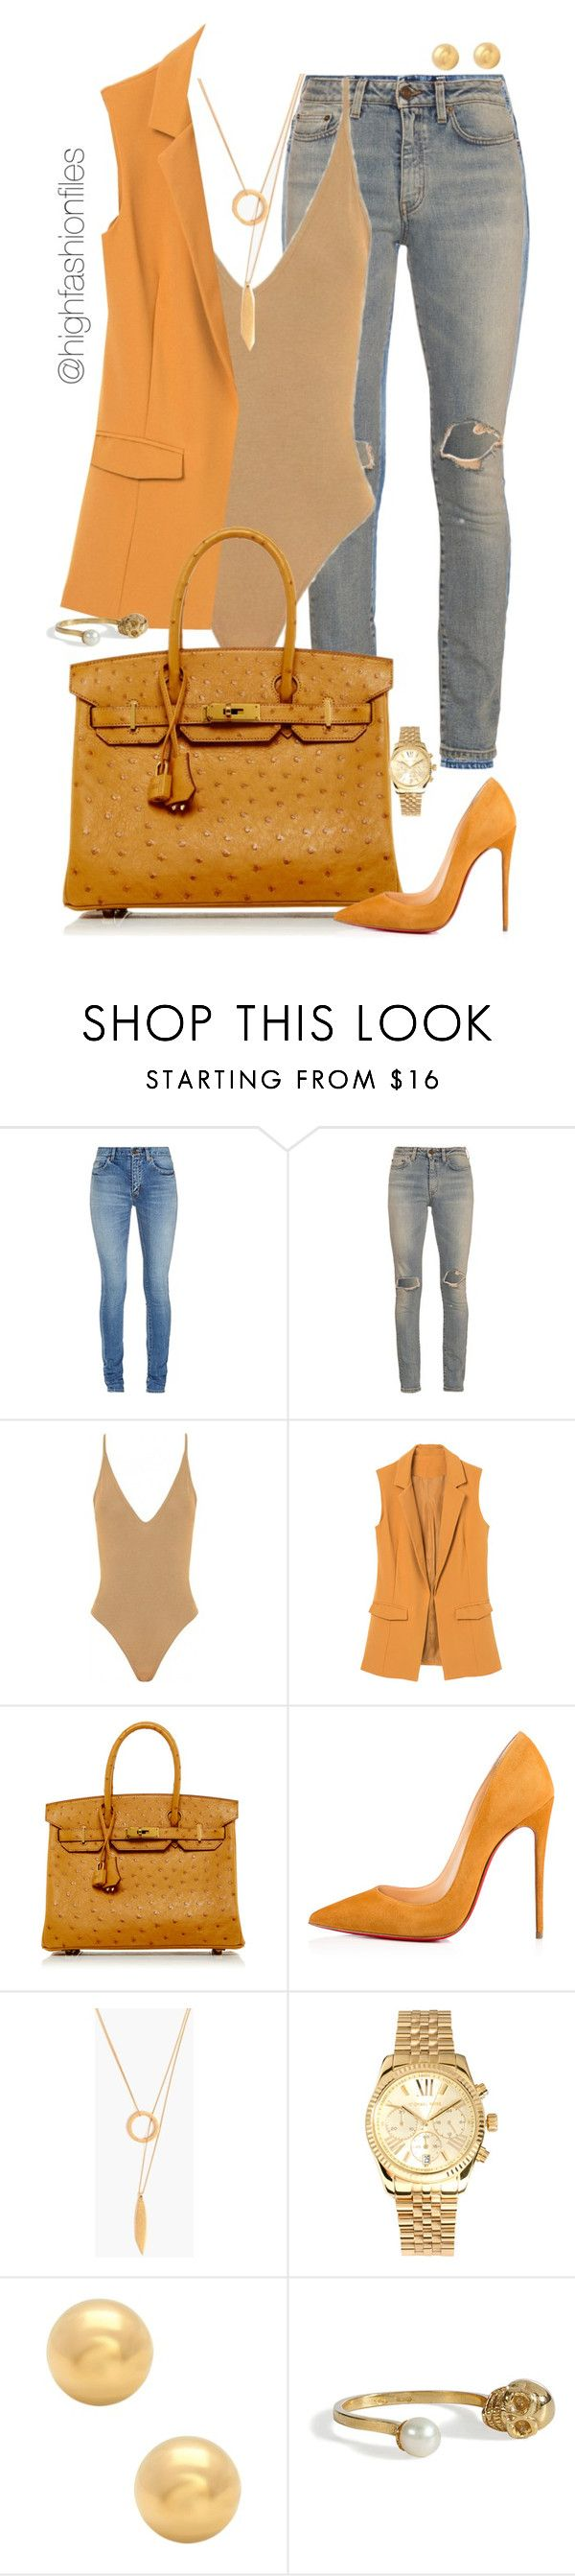 """""""Mustard"""" by highfashionfiles ❤ liked on Polyvore featuring Yves Saint Laurent, Hermès, Christian Louboutin, Madewell, Michael Kors and Delfina Delettrez"""